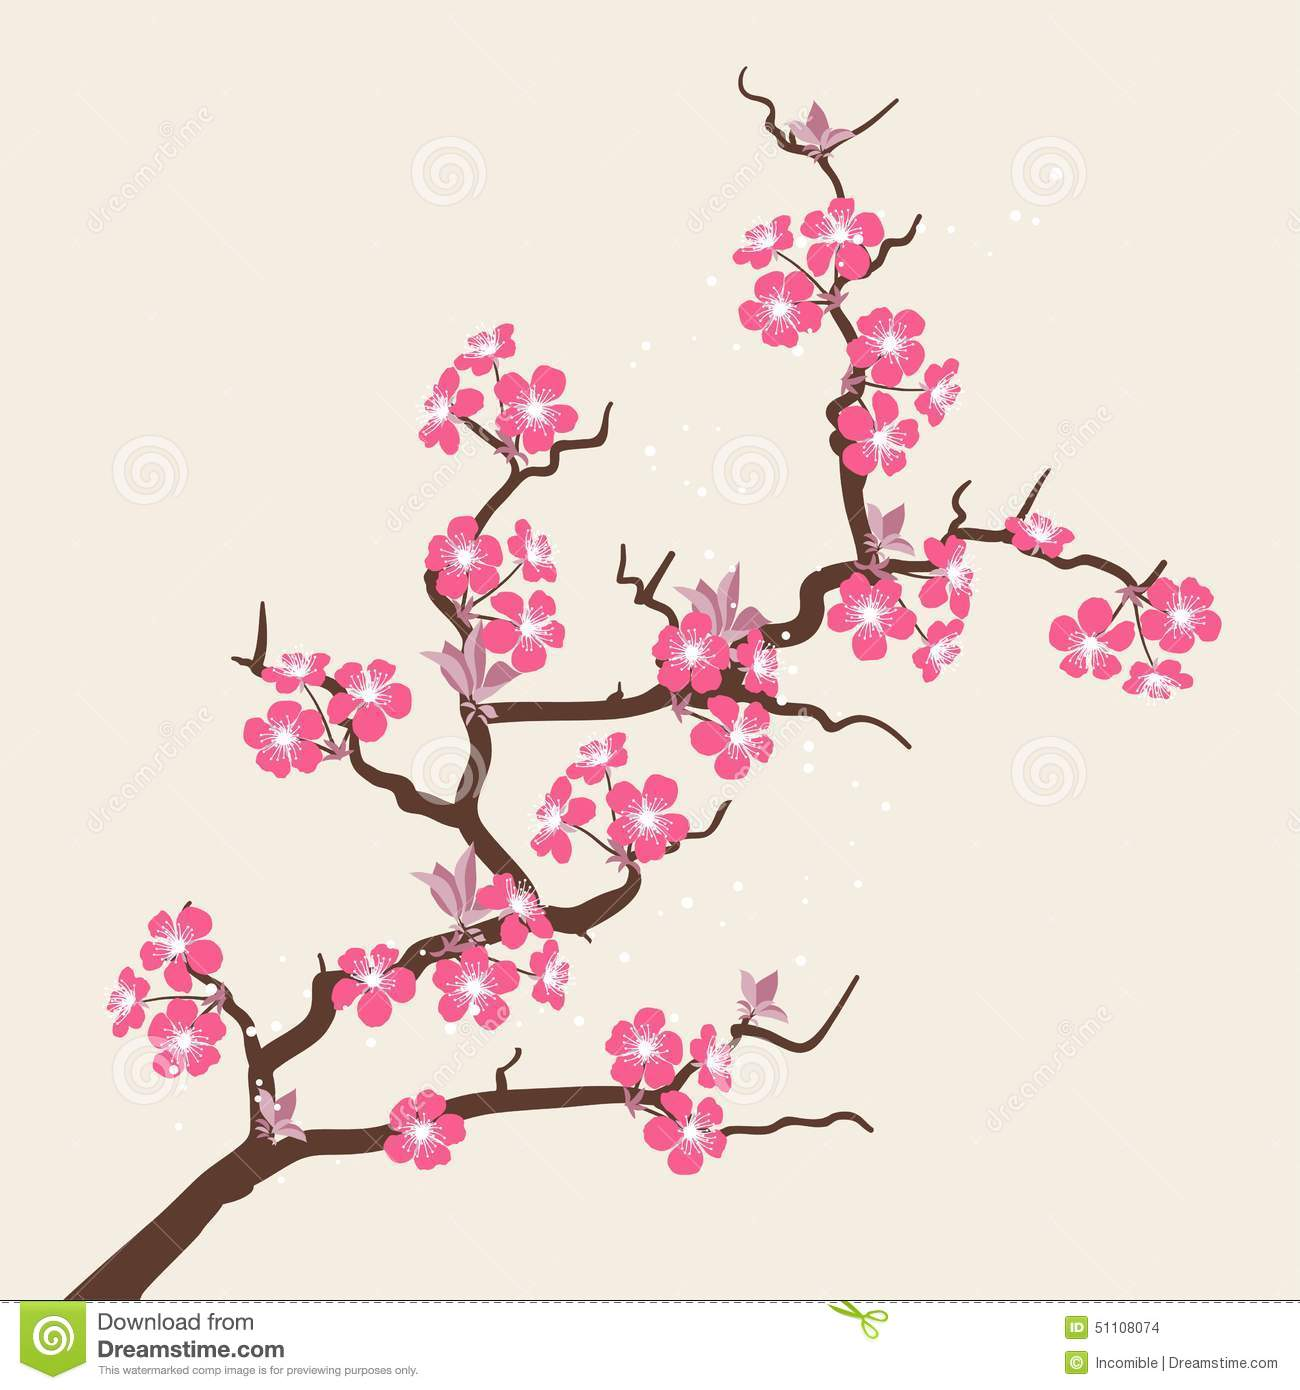 Card With Stylized Cherry Blossom Flowers Stock Vector